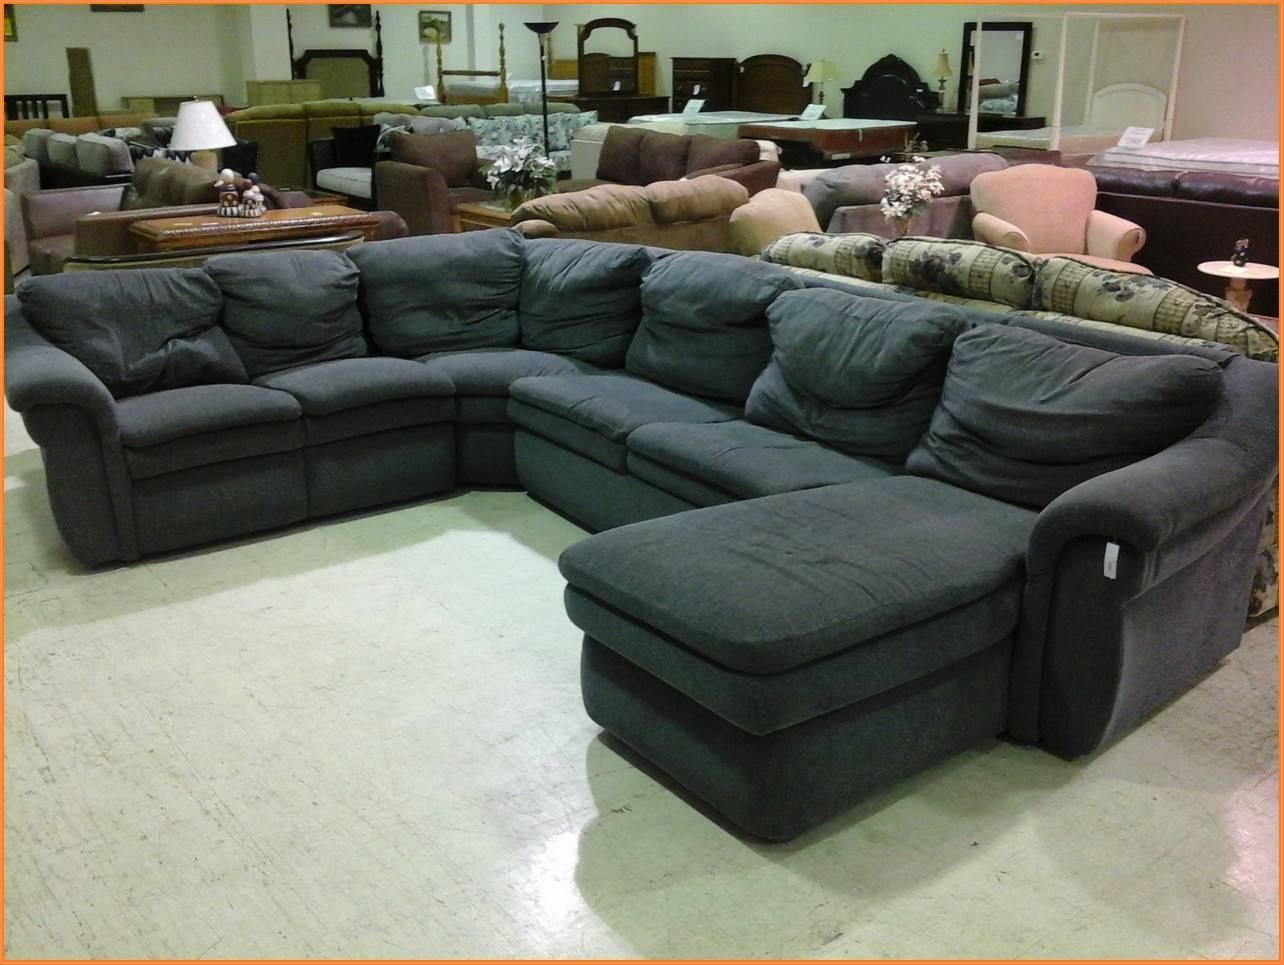 Sofas Center : Inspirational Lazy Boy Sectional Sofa In Office Within Lazyboy Sectional (View 11 of 20)